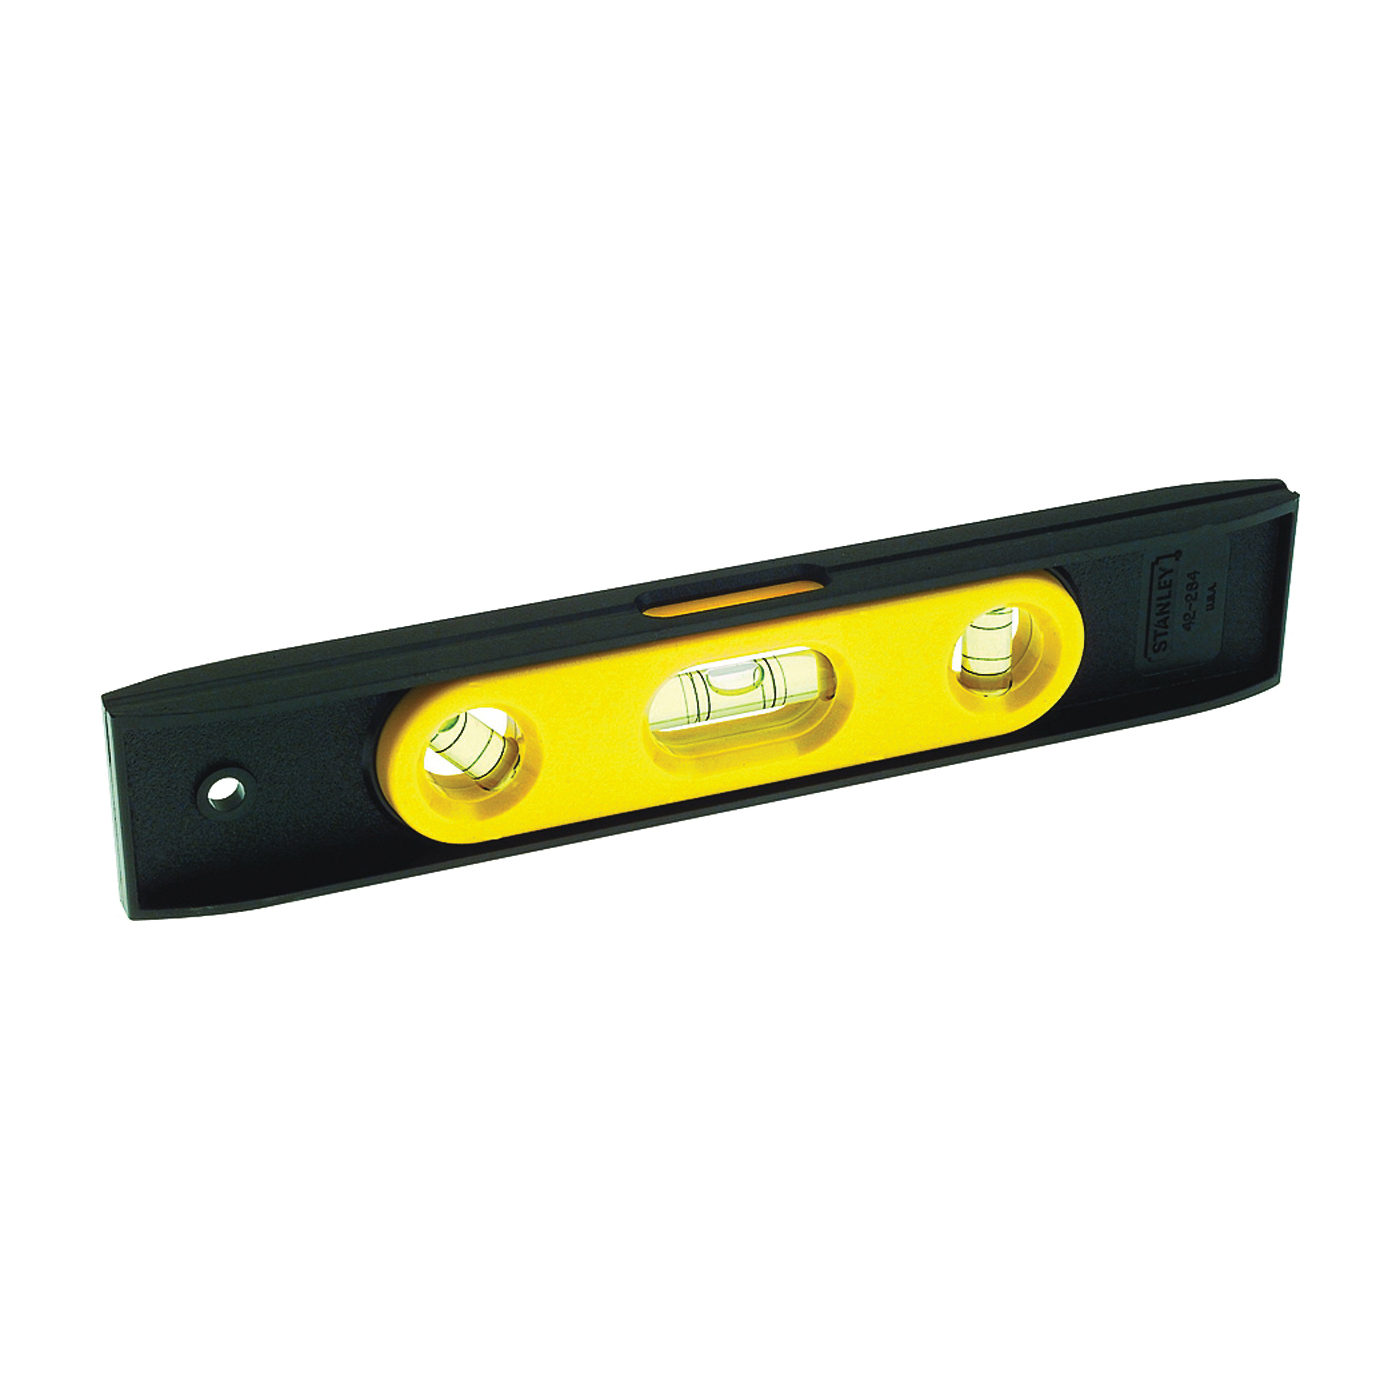 Picture of STANLEY 42-264 Torpedo Level, 9 in L, 3 -Vial, 1 -Hang Hole, Magnetic, Plastic, Black